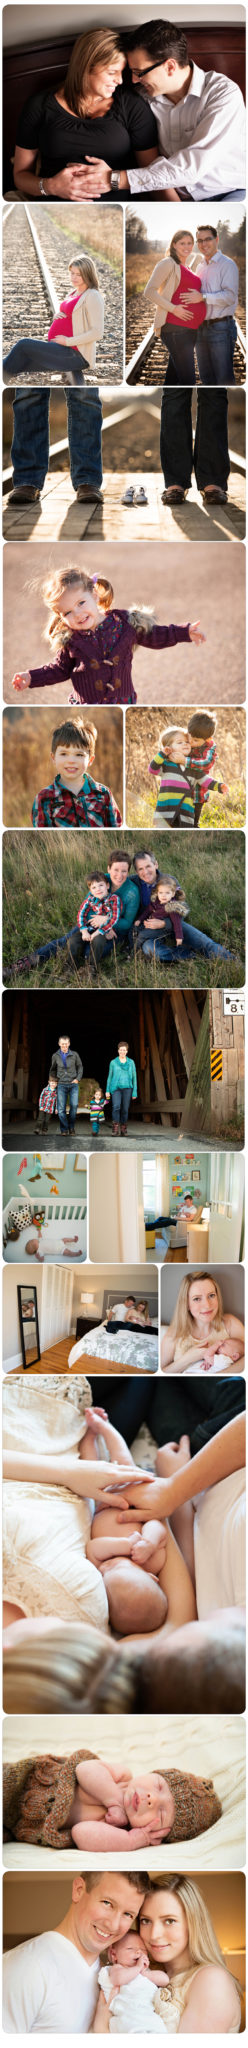 halifax_family_photography